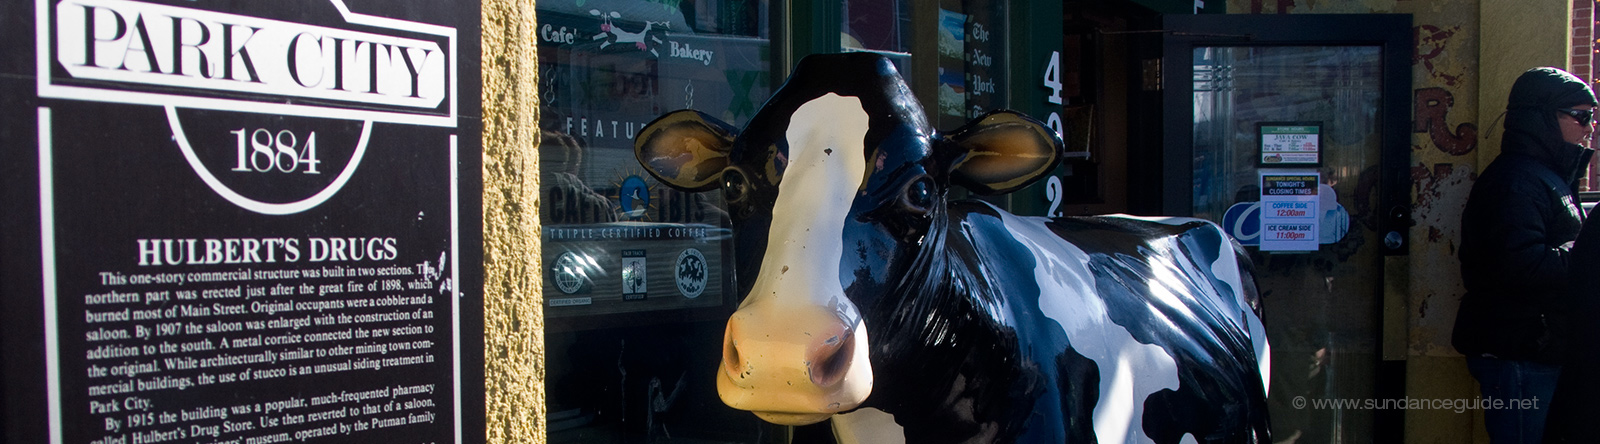 A picture of a cow sculpture on the street in Park City, Utah